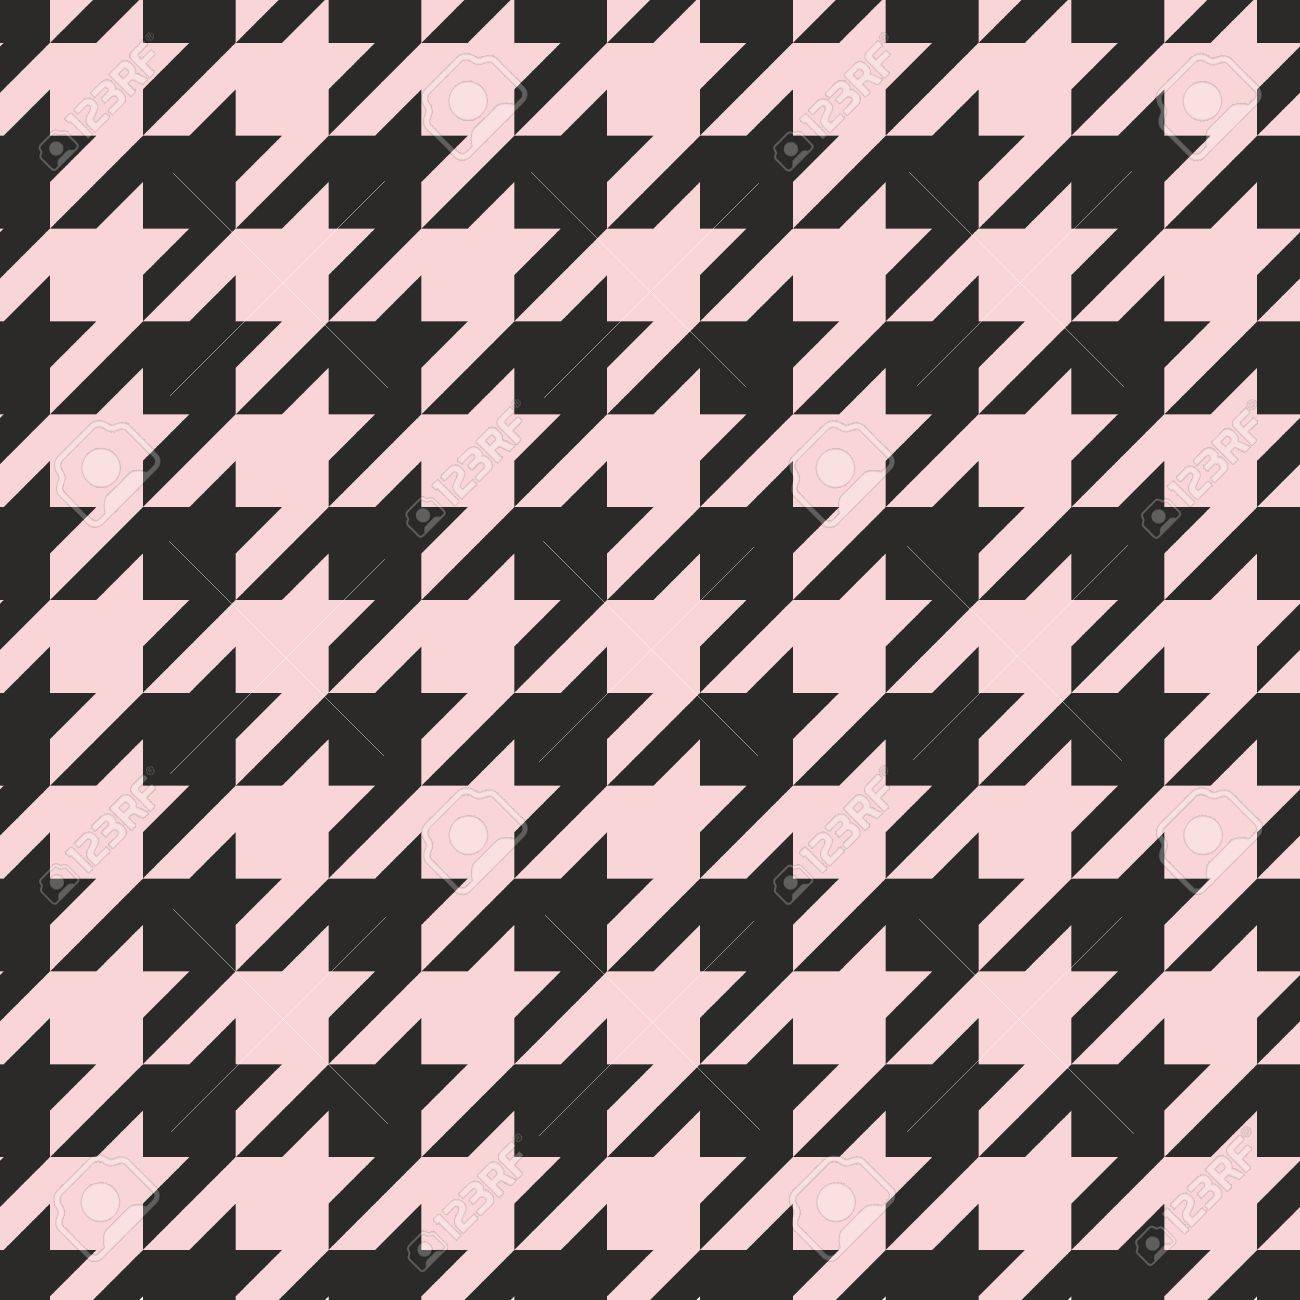 Houndstooth Seamless Vector Pastel Pink And Black Pattern Or